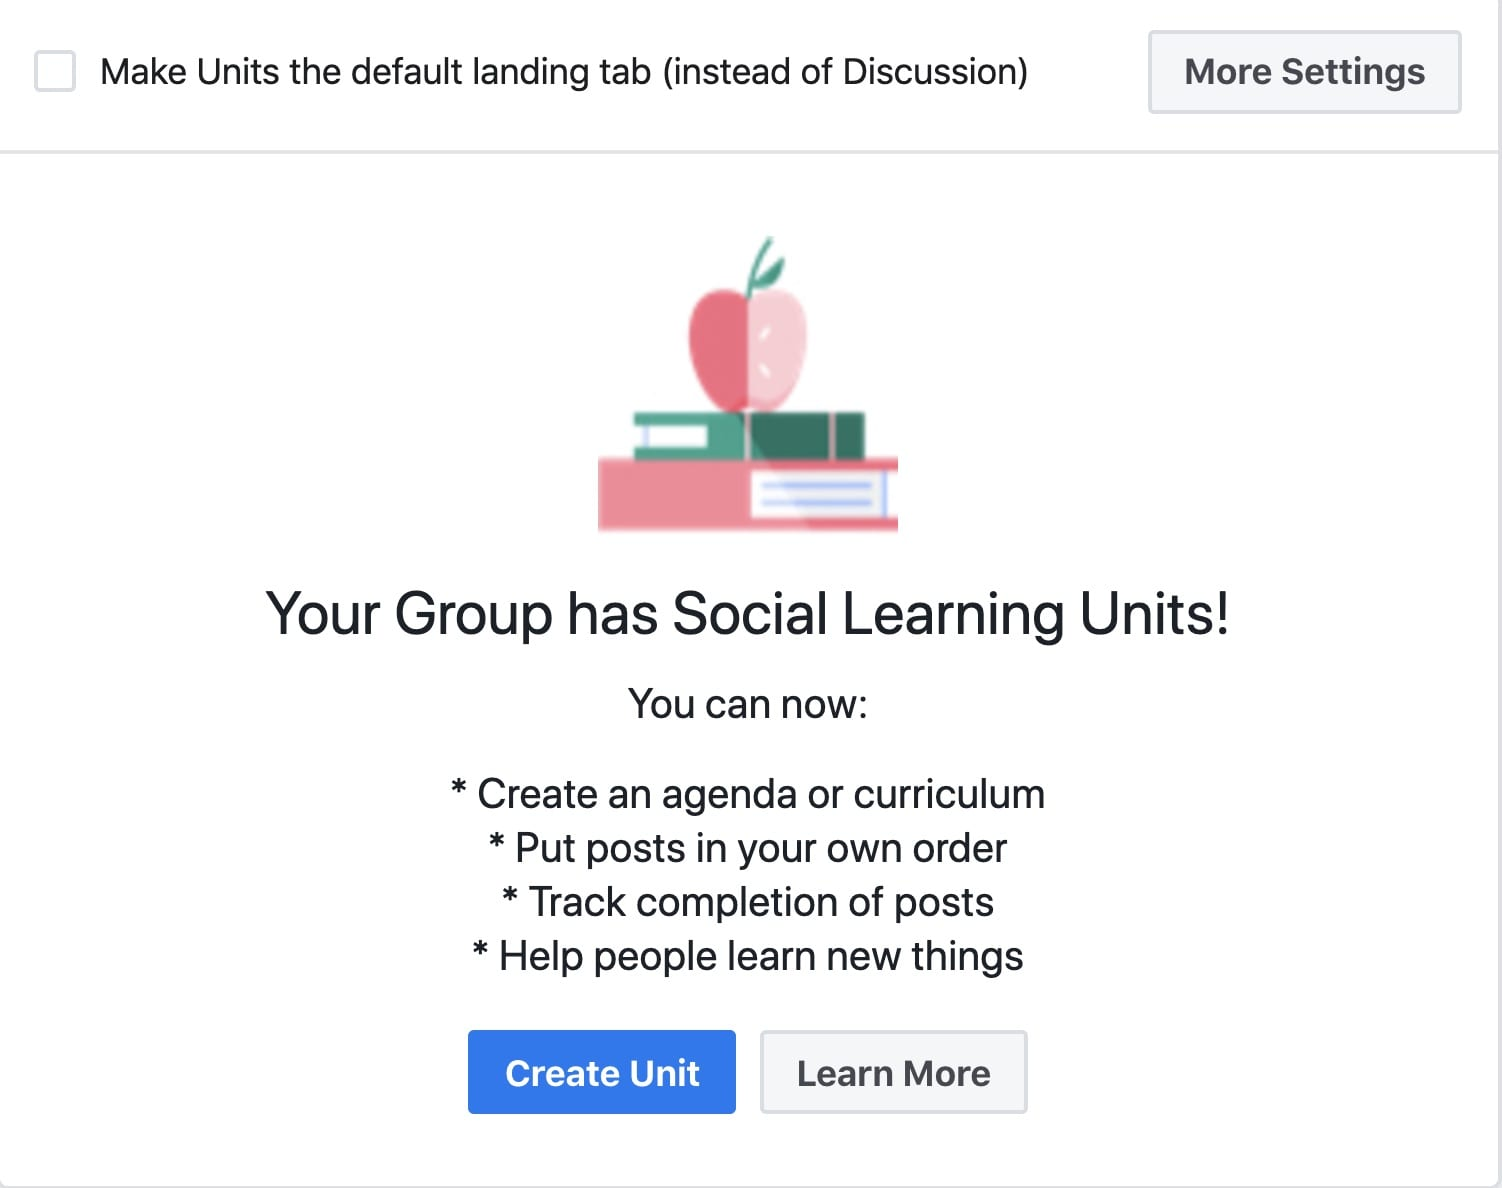 The social learning group is a general group with added features to create a learning environment.  This allows the admin to create learning units, sort them and require them to be viewed. The group has insights which allow the admin to see post-completion and gain information about how students are engaging with the content.